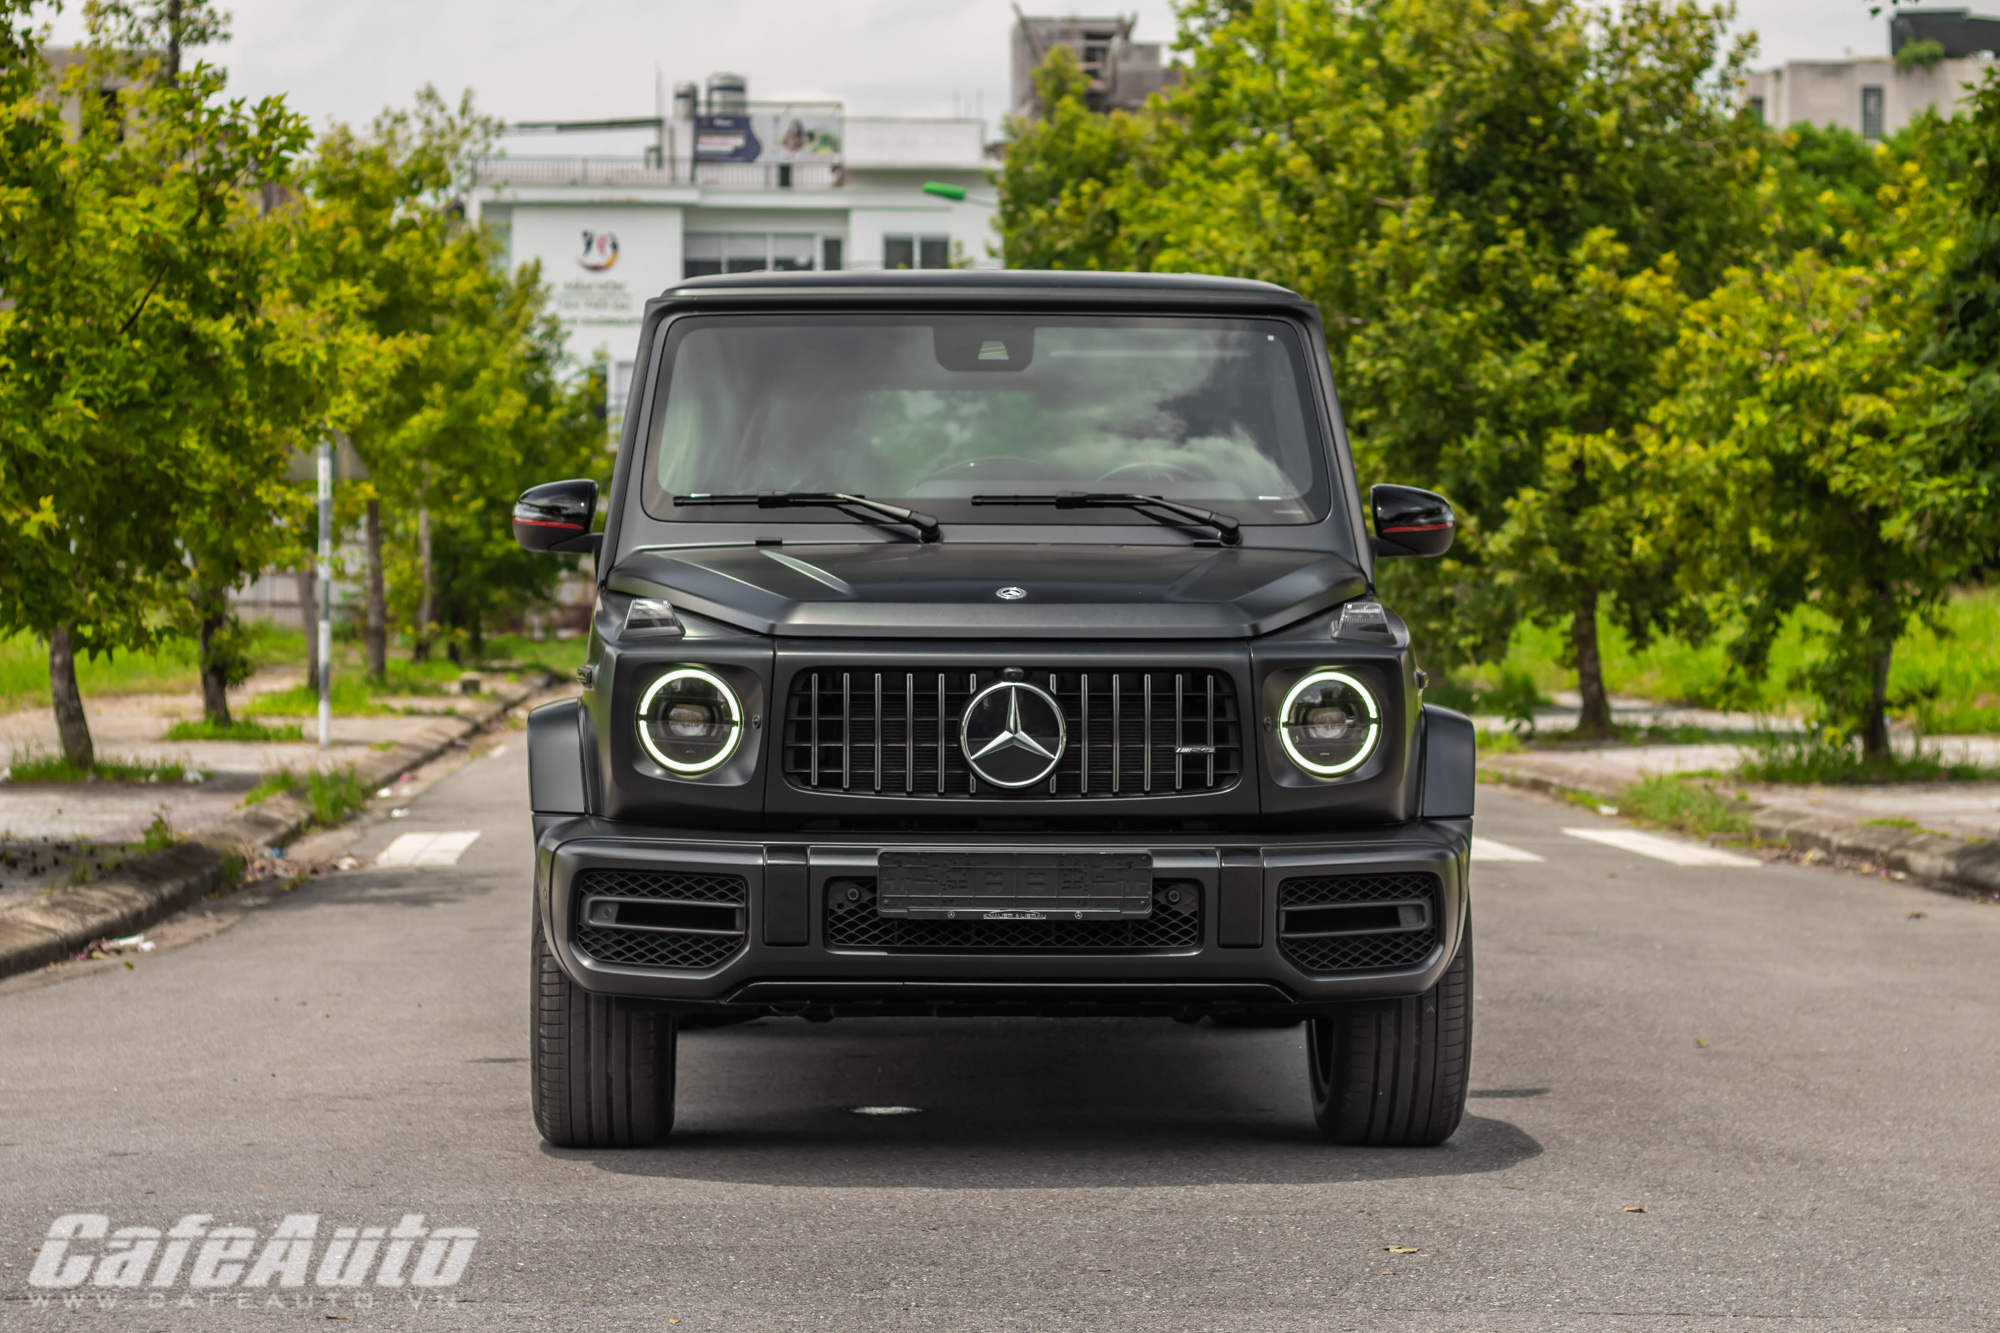 MercedesG63TrailPackage-cafeautovn-4